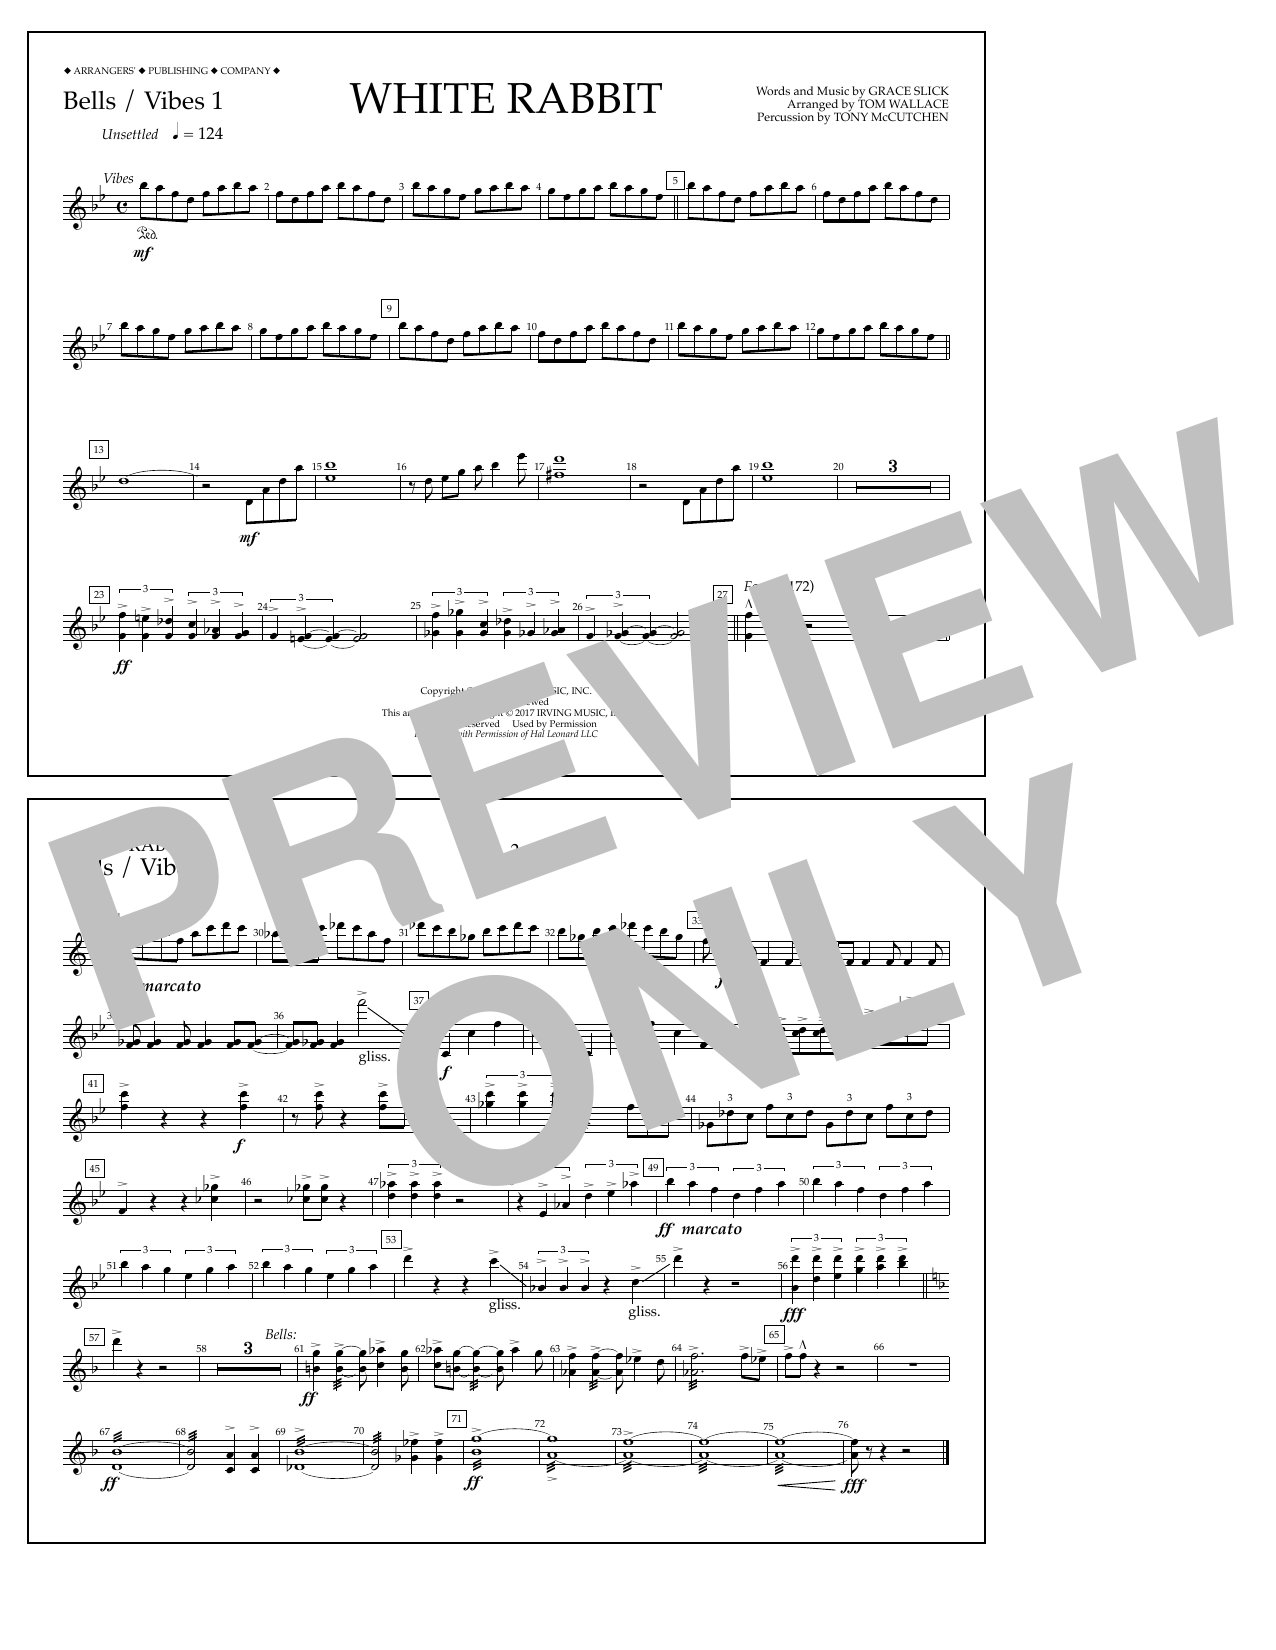 White Rabbit - Bells/Vibes 1 Sheet Music